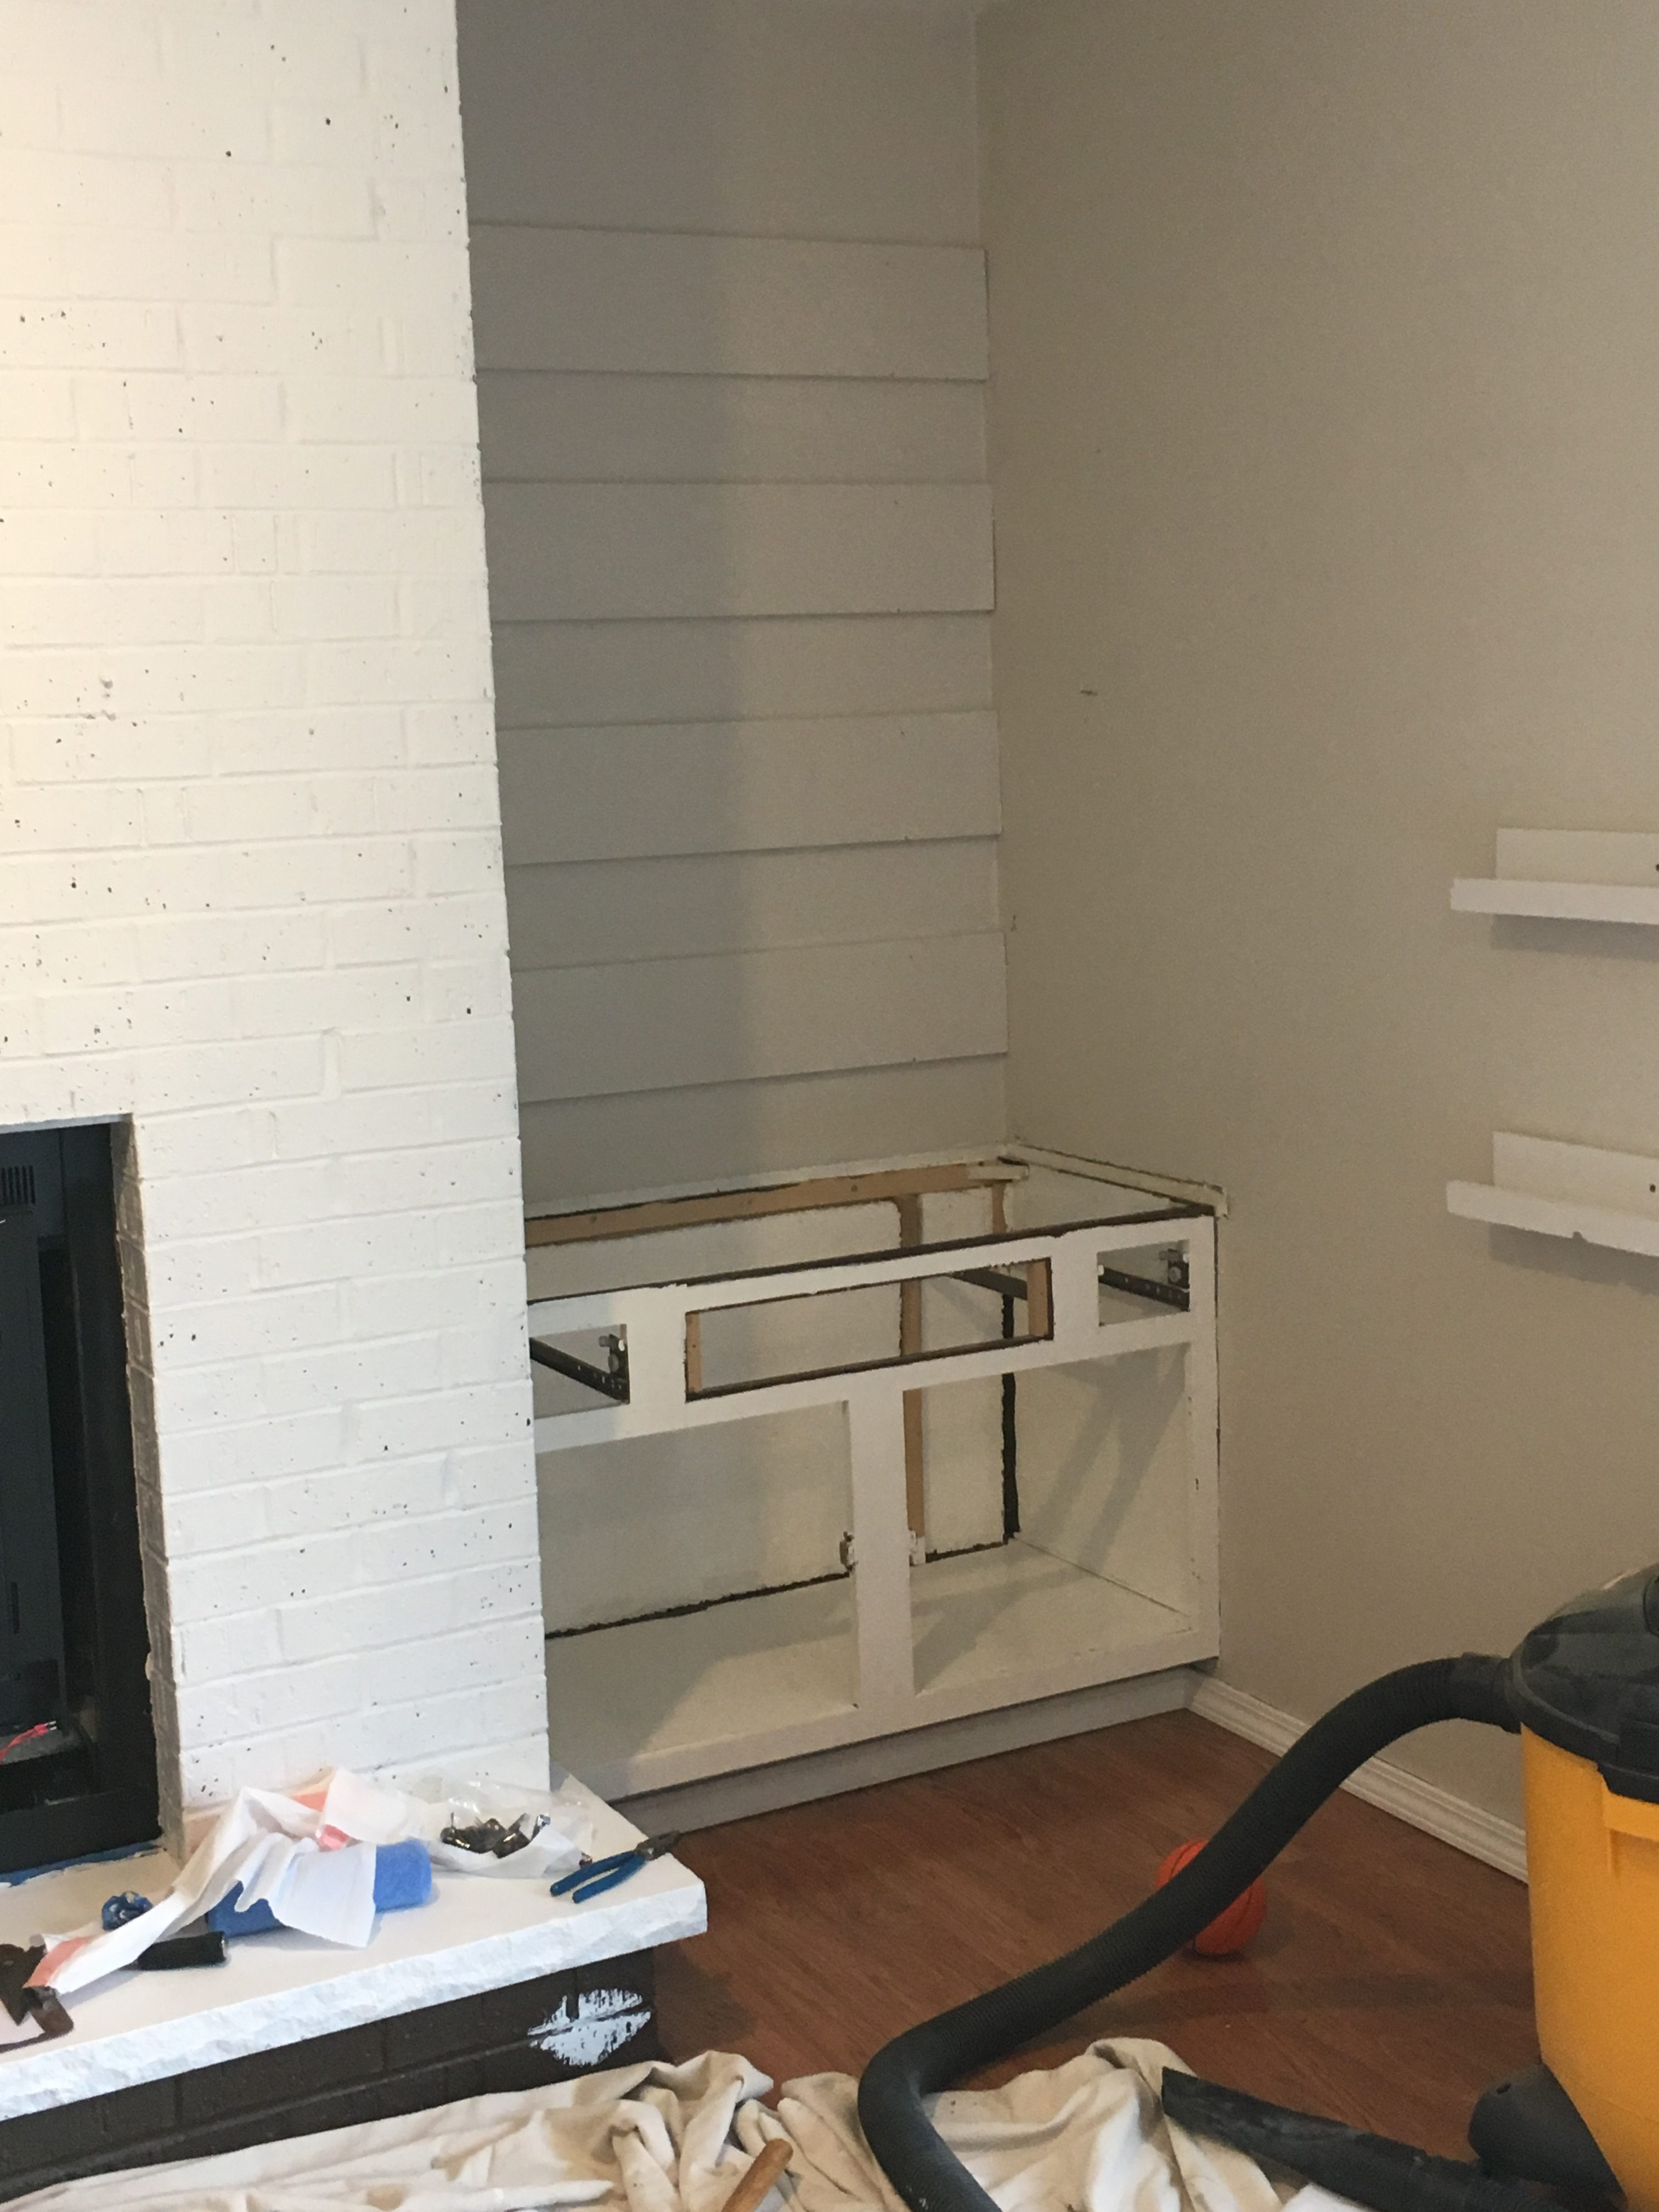 How to Make Custom Built-in Shelves Next to the Fireplace